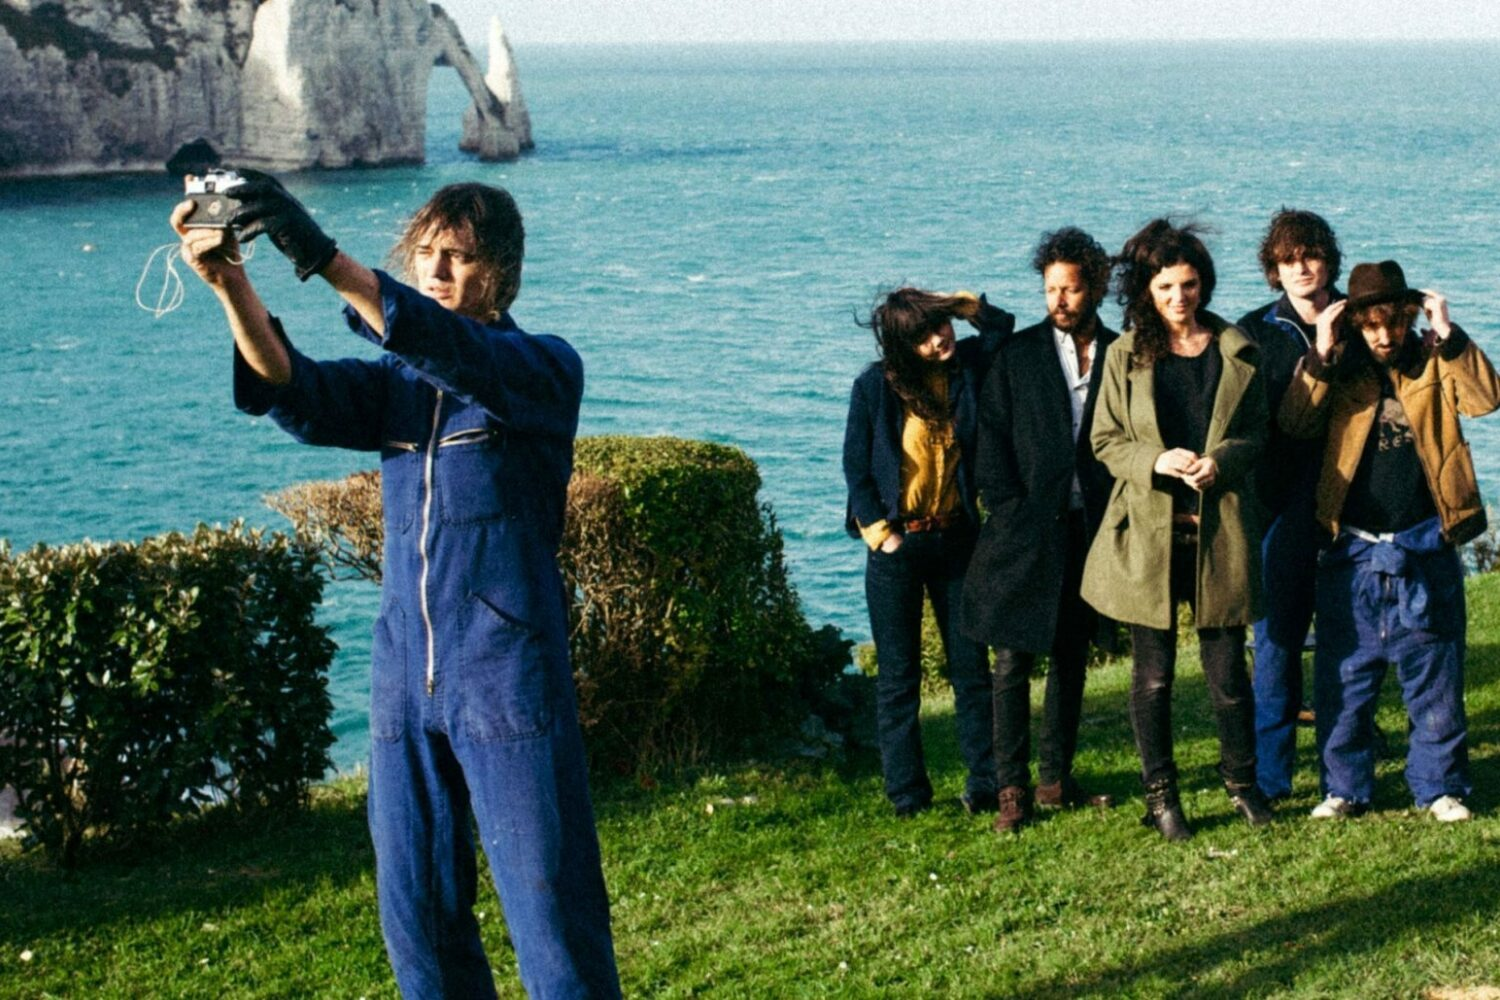 Peter Doherty and the Puta Madres share new single 'Paradise Is Under Your Nose'